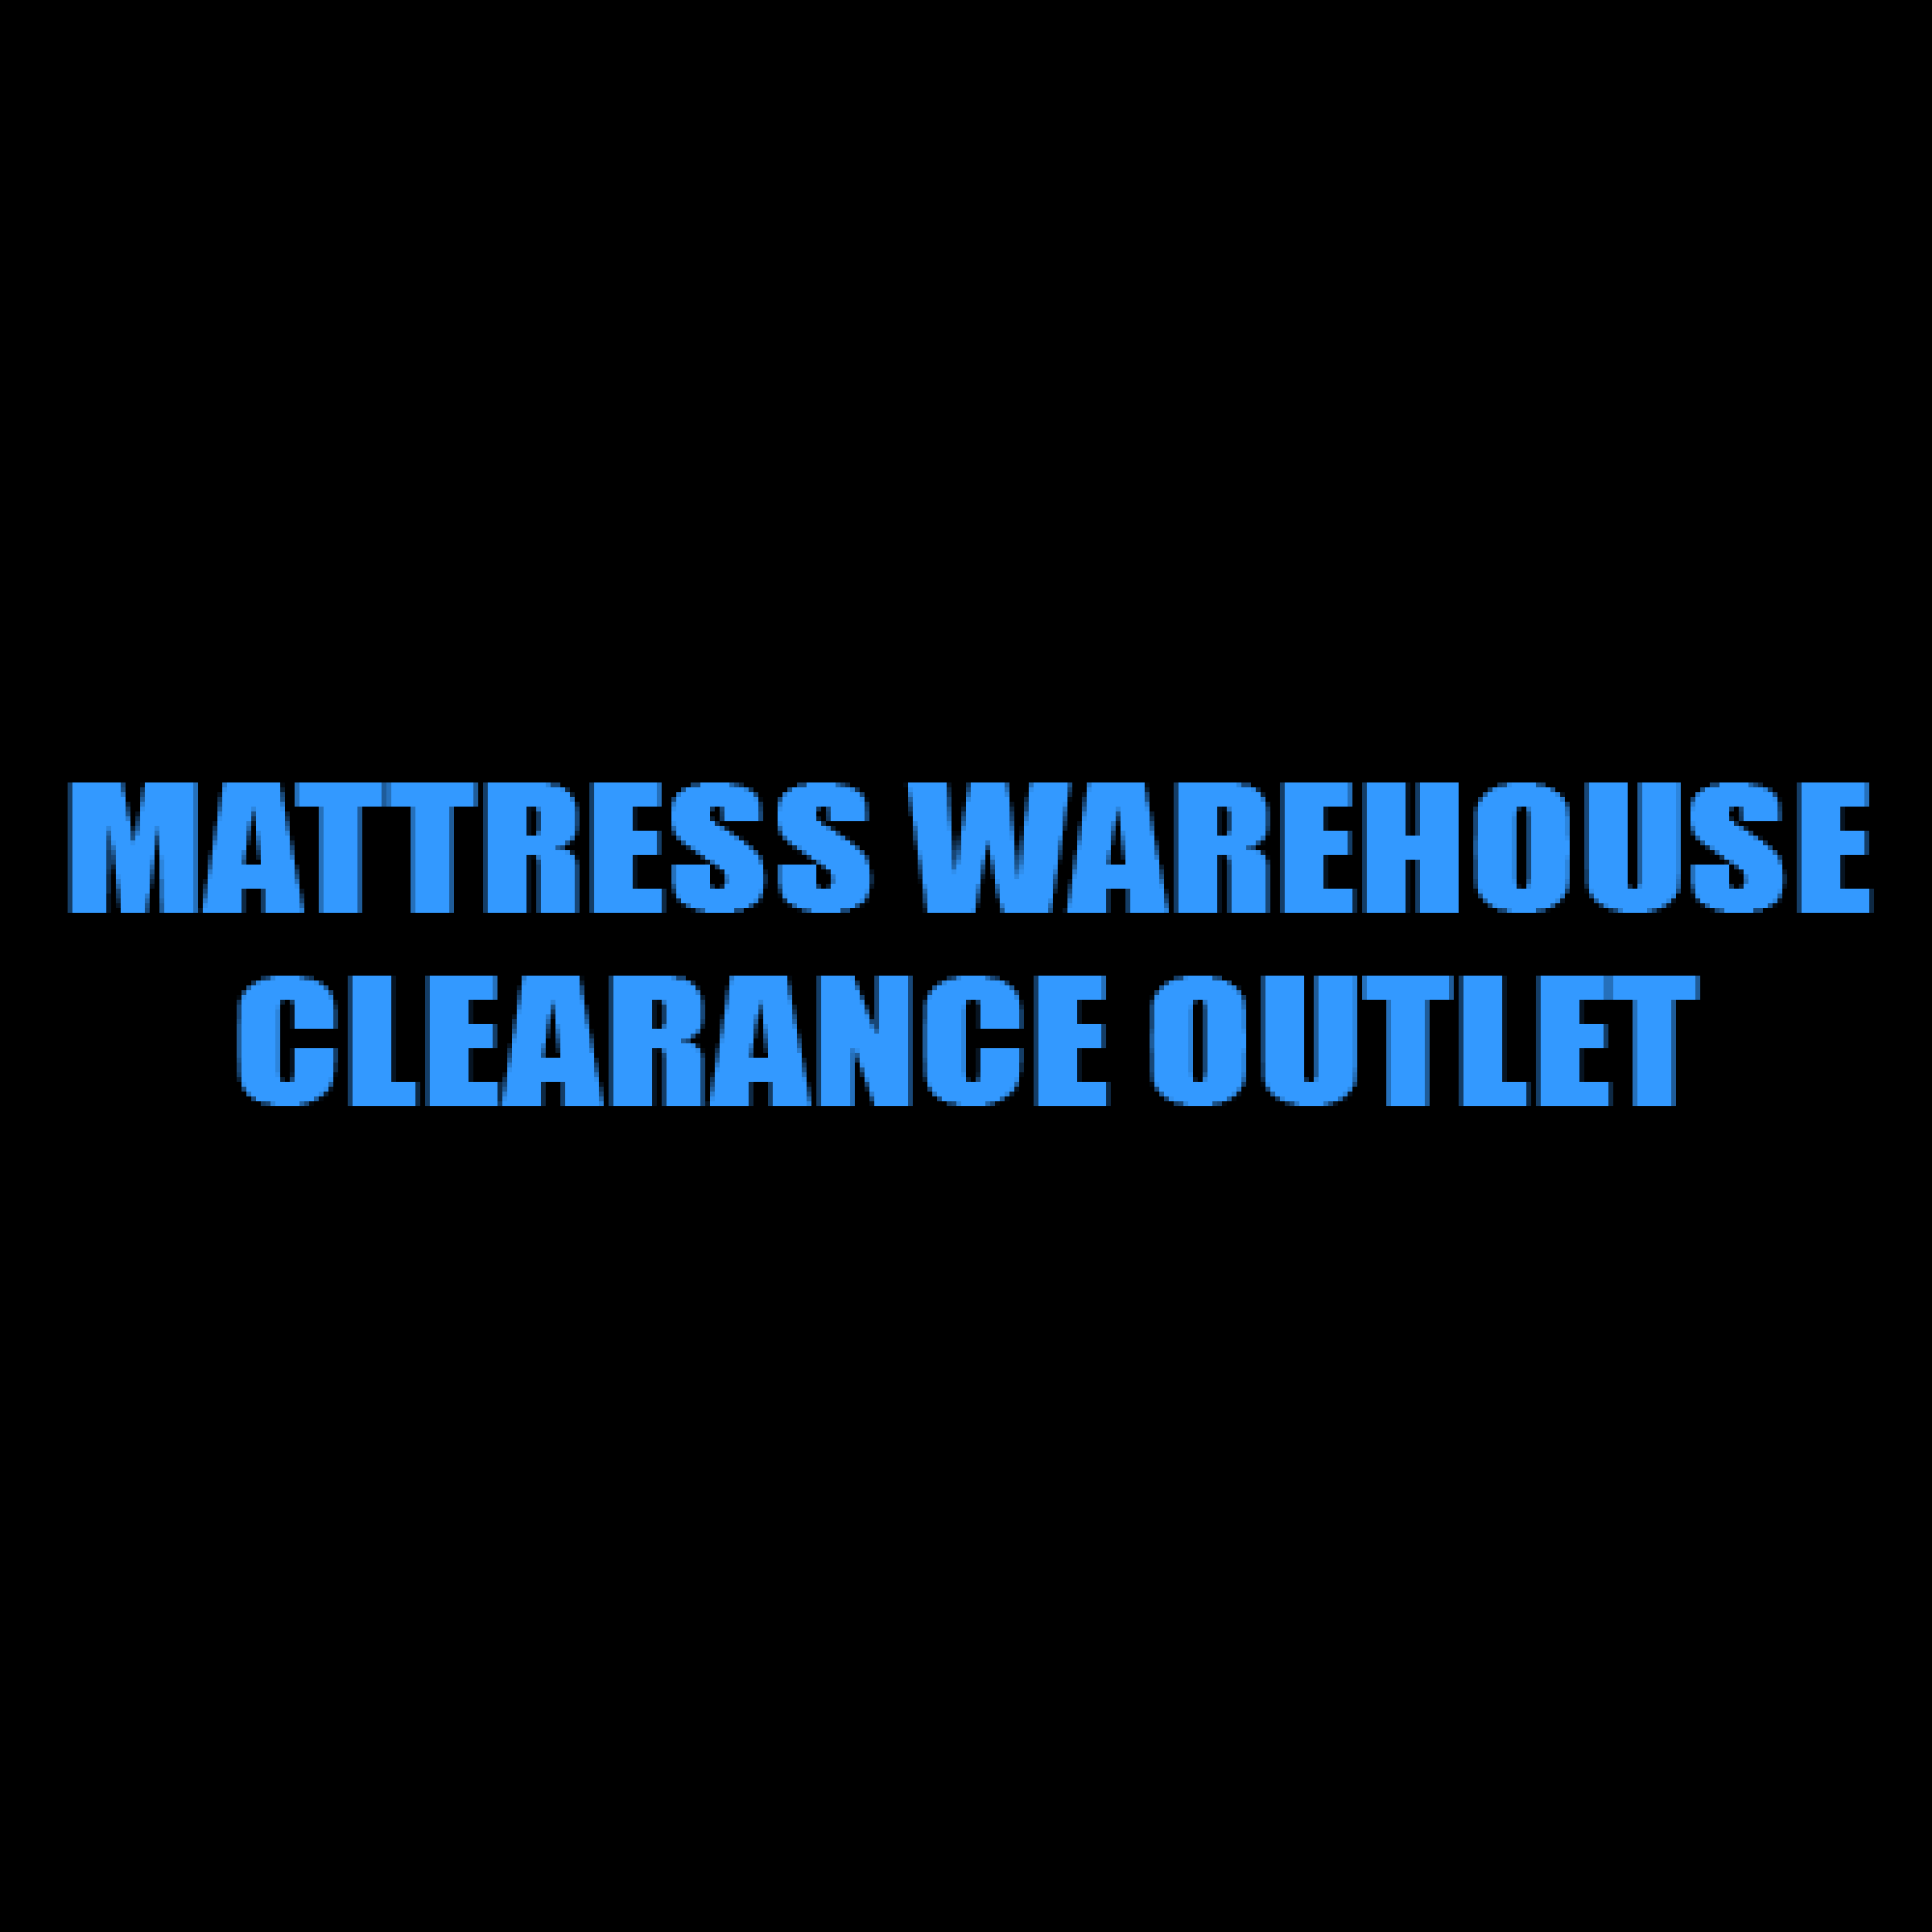 mattress warehouse clearance outlet 9357 greenback ln orangevale